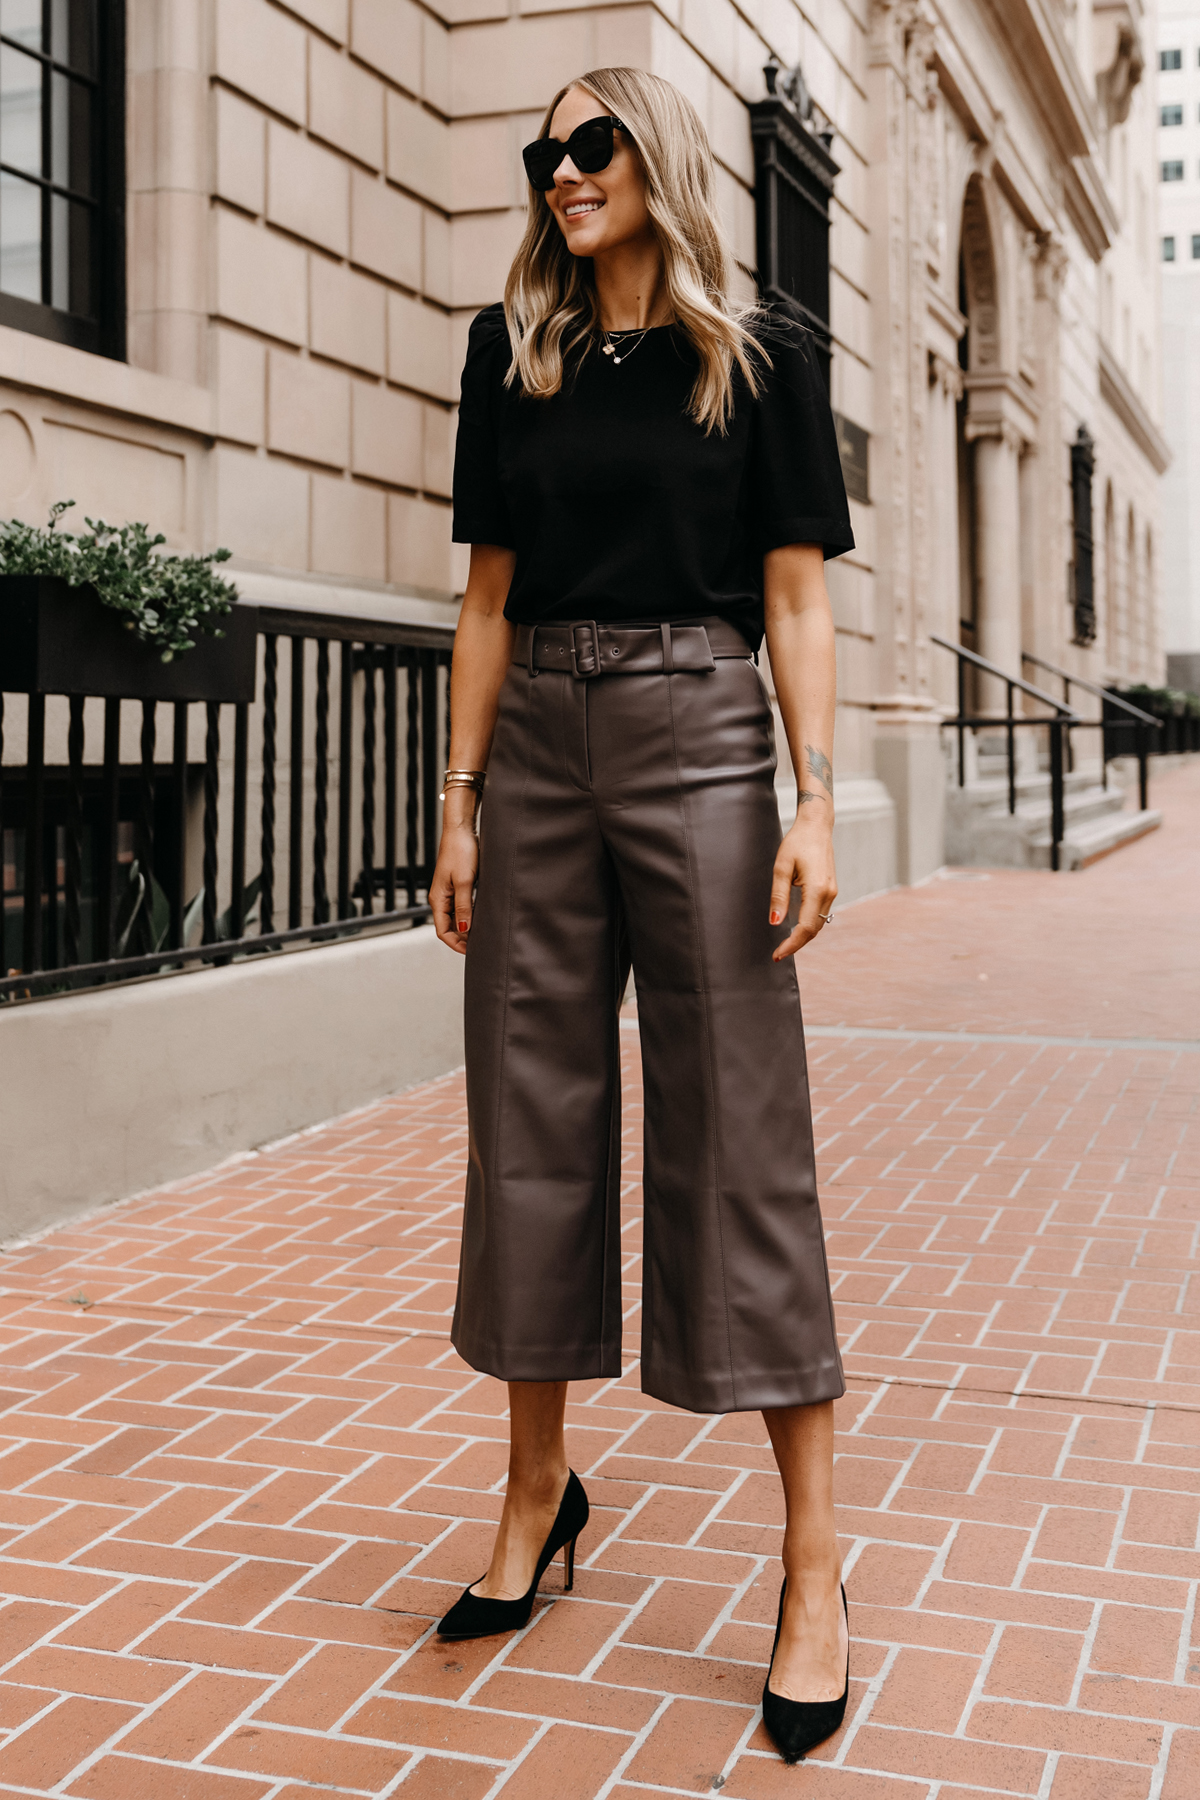 Fashion Jackson Wearing Ann Taylor Workwear Outfit Black Puff Sleeve Blouse Leather Pants Black Pumps Womens Workwear Attire